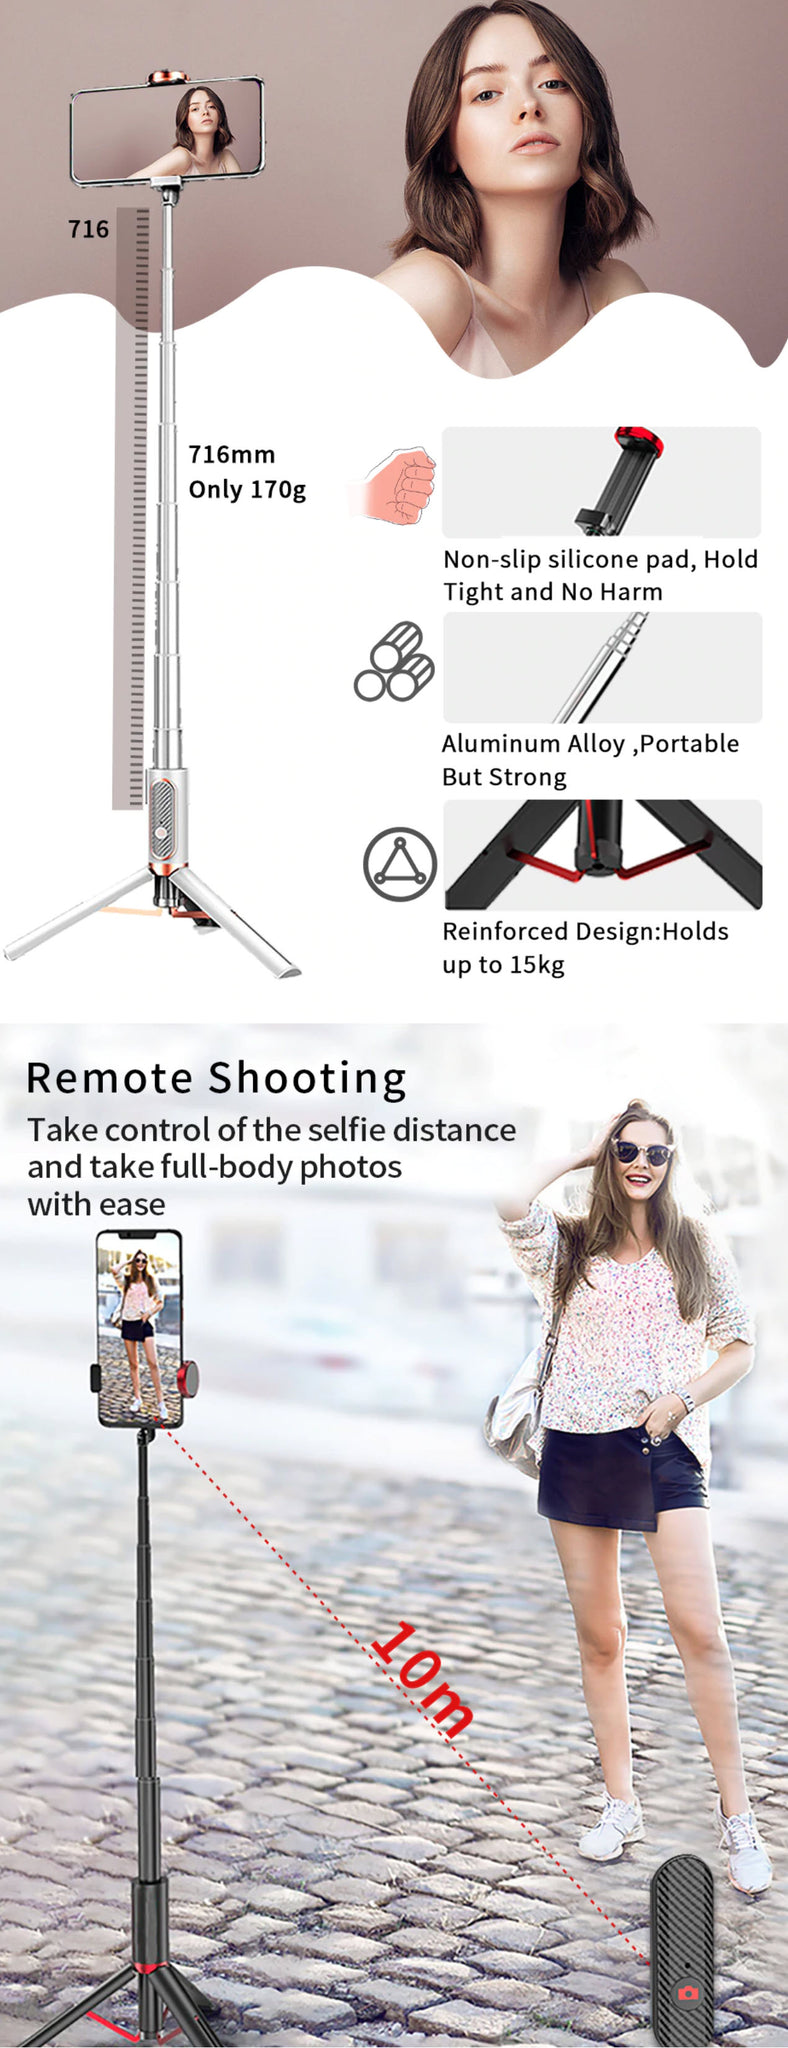 Ulanzi SK-01 Bluetooth Tripod Selfie Stick Product Features Remote Shooting